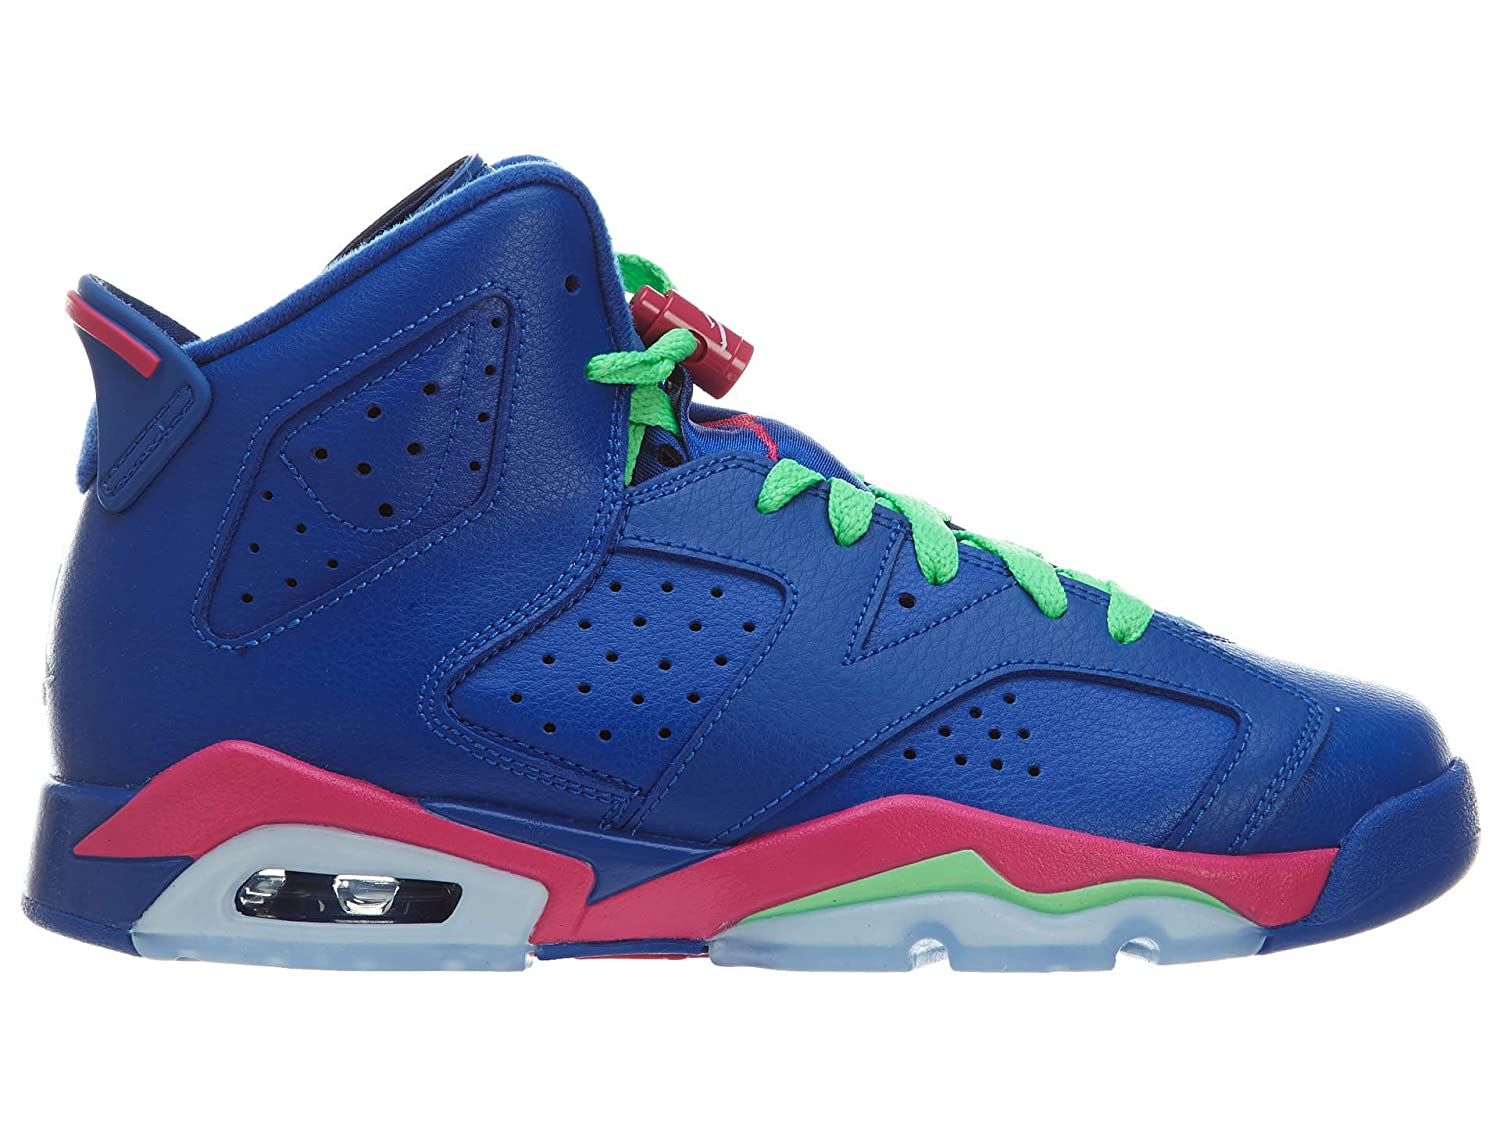 best sneakers f73b8 b8338 Amazon.com   Nike Air Jordan 6 Retro GG Hi Top Trainers 543390 Sneakers  Shoes   Shoes